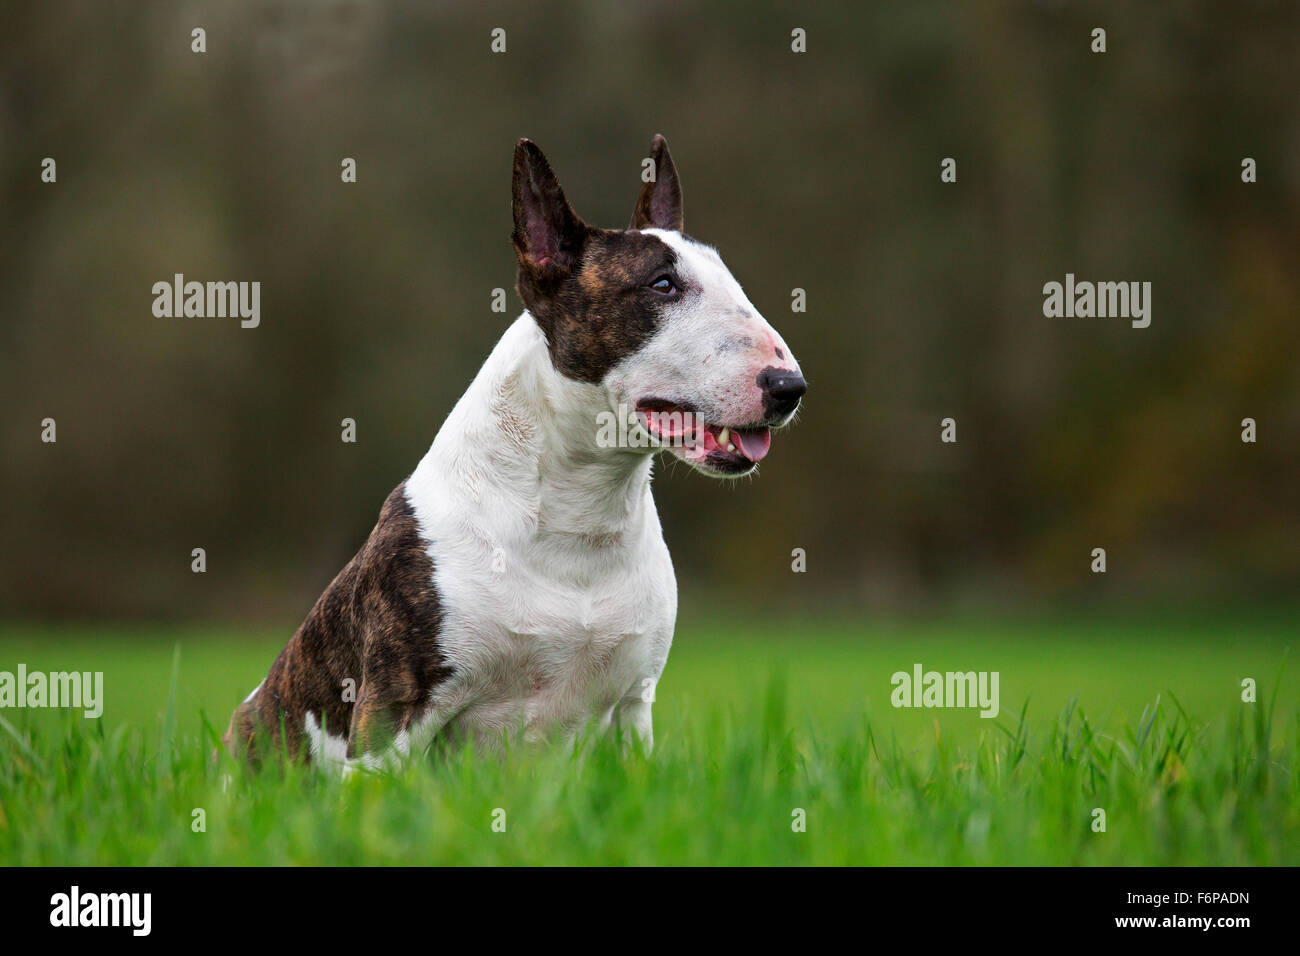 Bull terrier sitting on lawn in garden - Stock Image